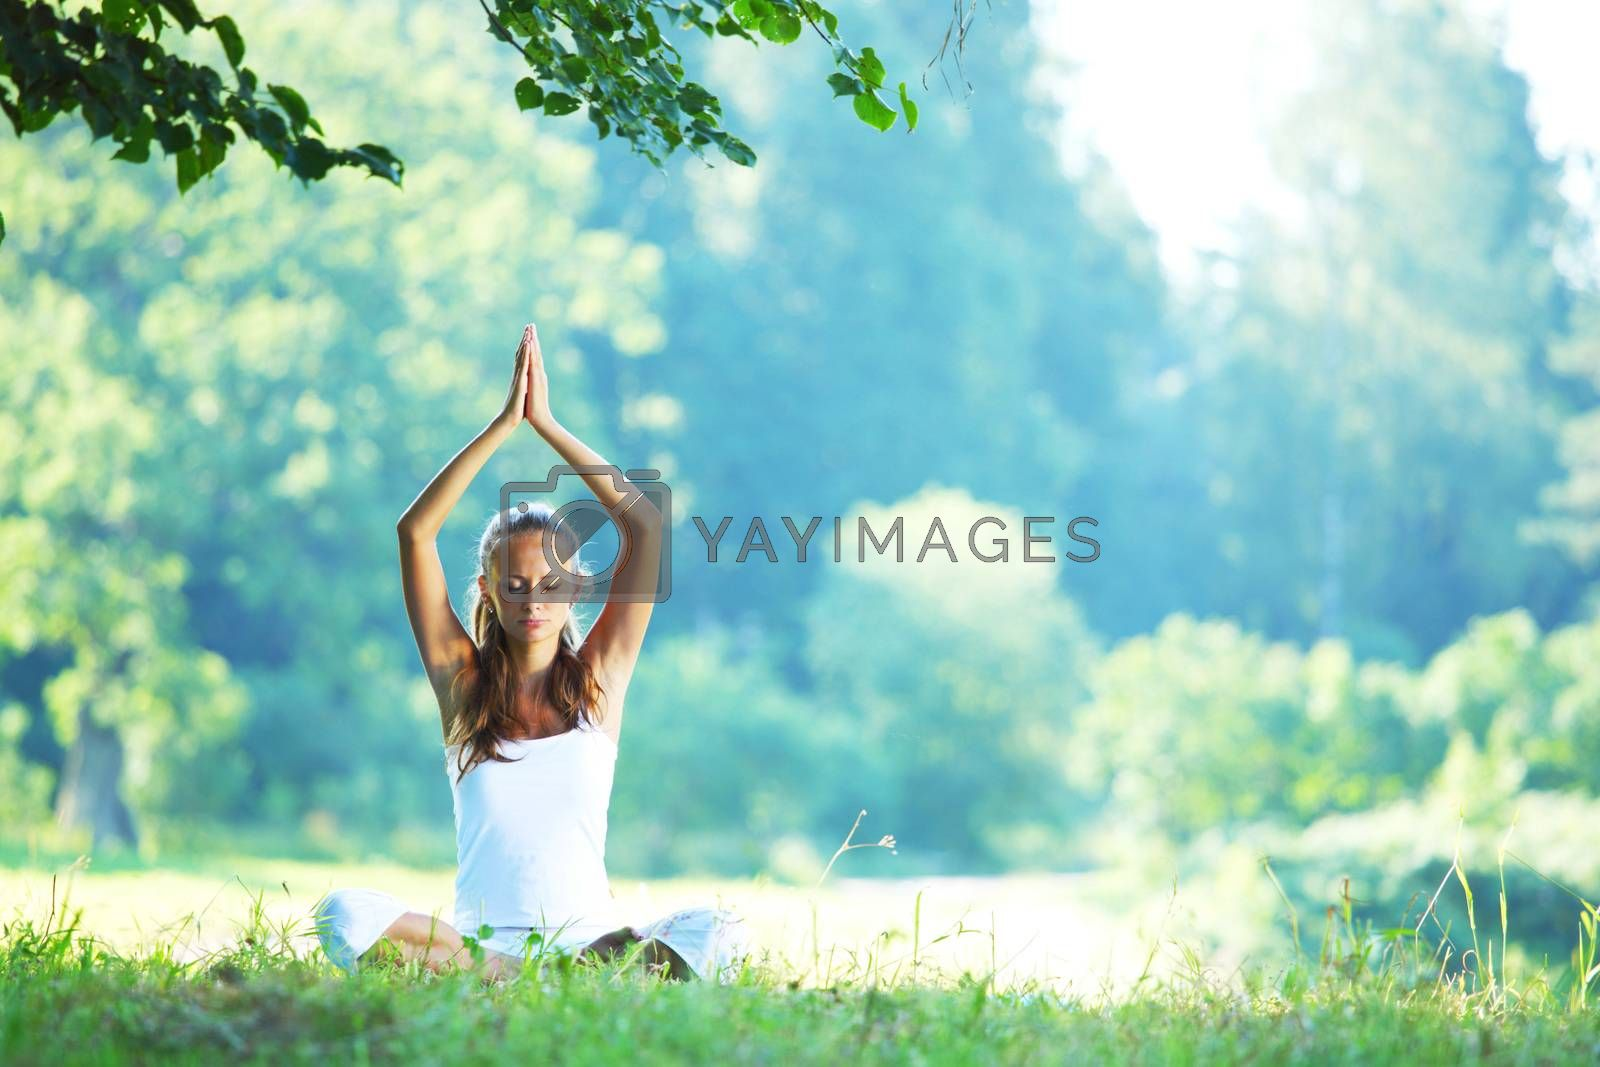 Yoga woman in white on green park grass in lotus asana pose